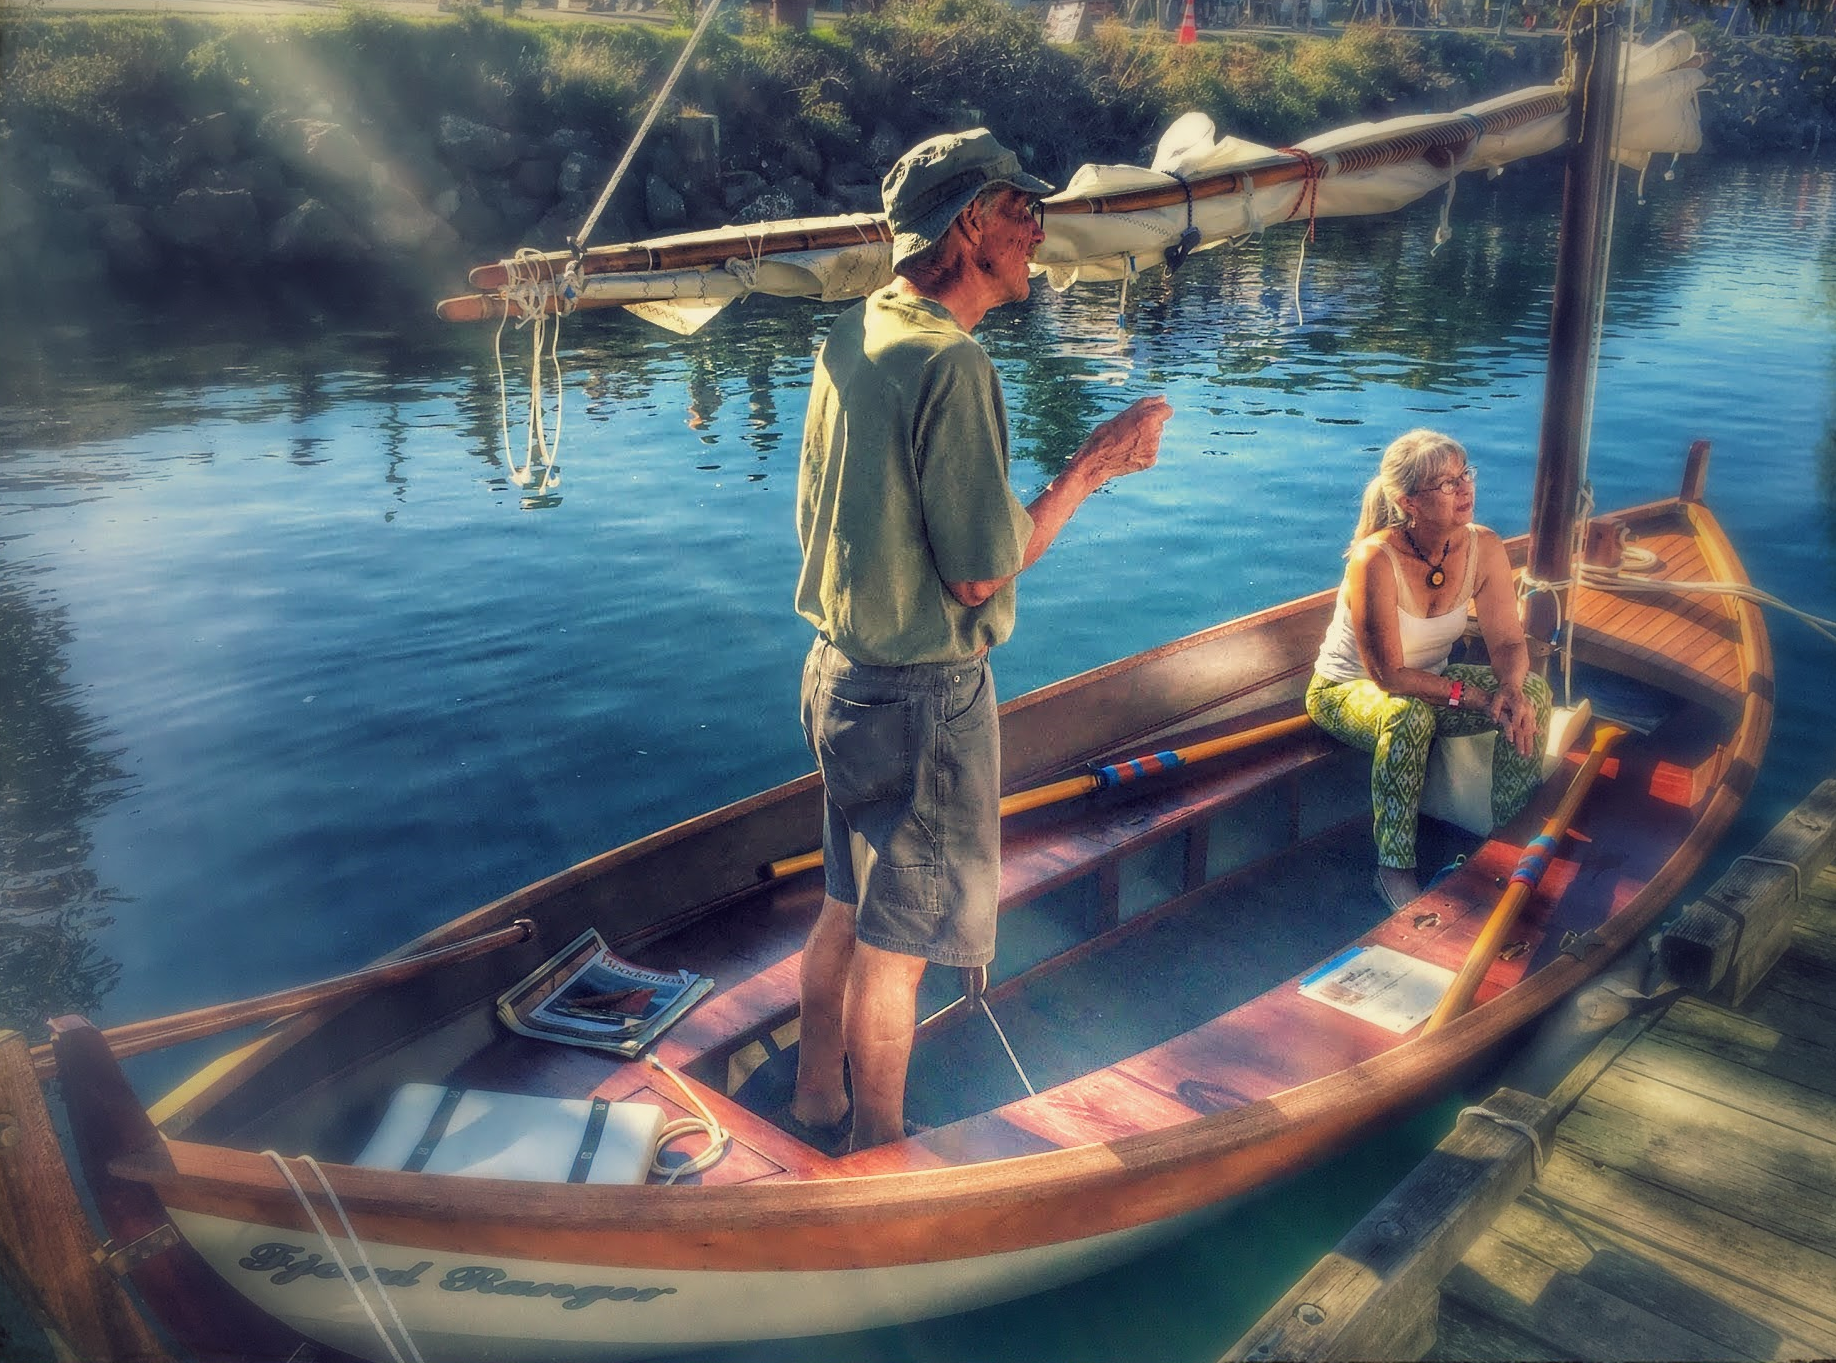 Suzanne & David on the Fjord Ranger - Port Townsend Wooden Boat Show 2015